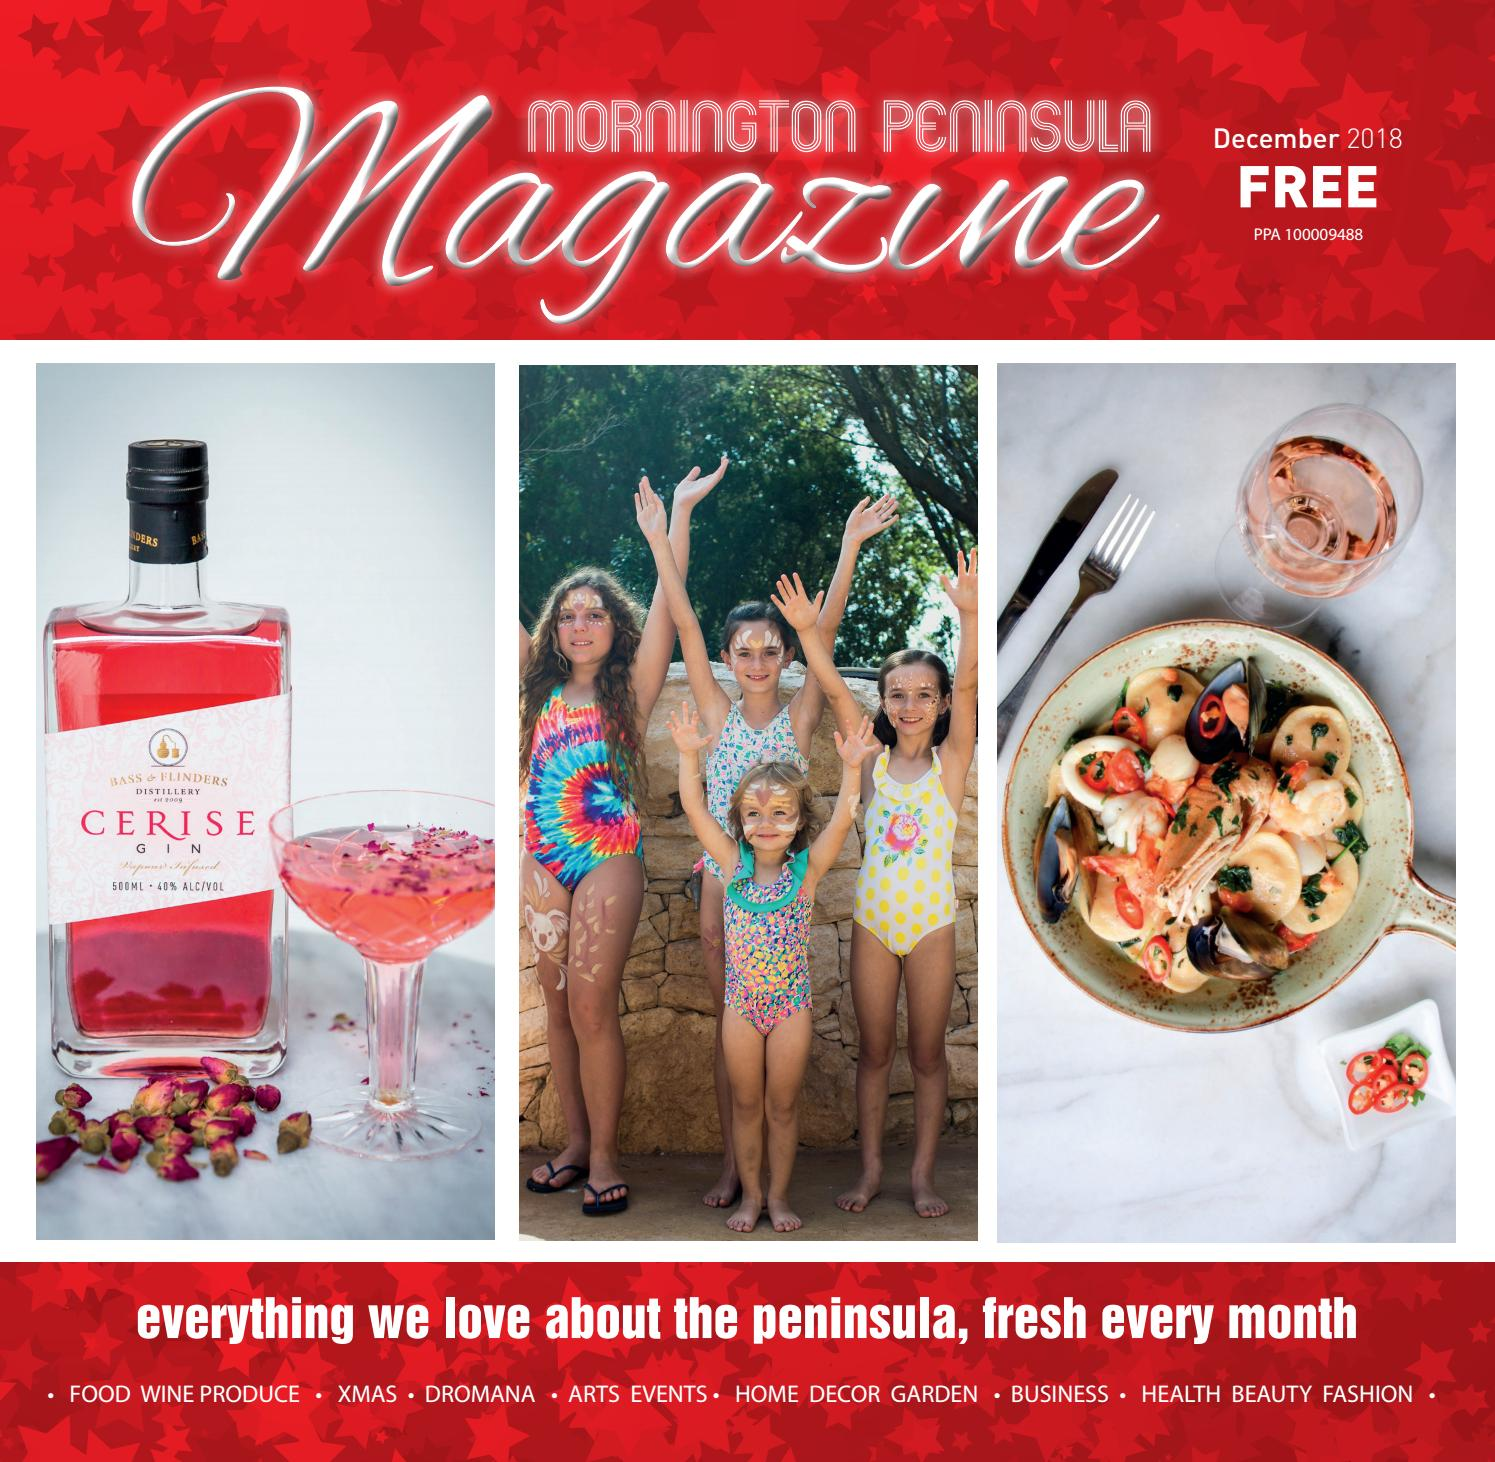 9cac2487a Mornington Peninsula Magazine December 2018 by Mornington Peninsula ...